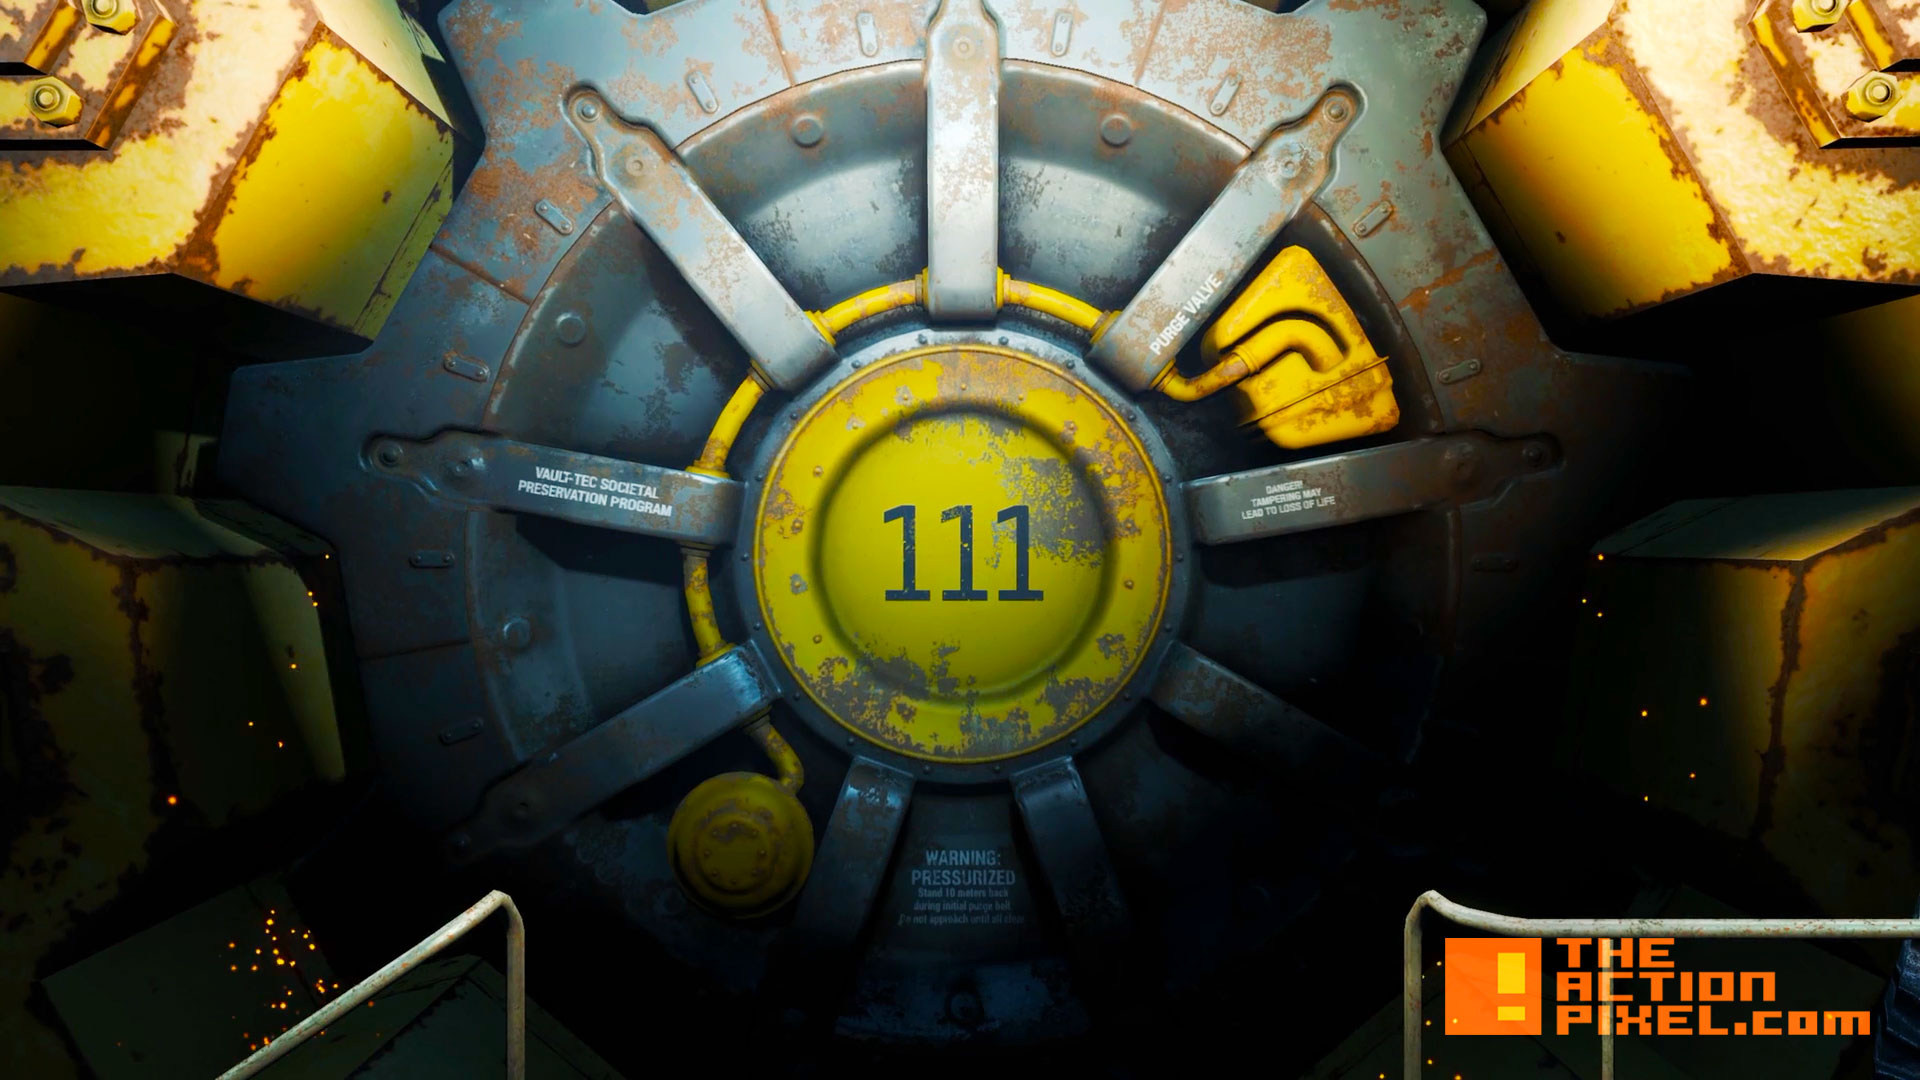 fallout 4. vault 111. bethesda. the action pixel. entertainment on tap. @theactionpixel